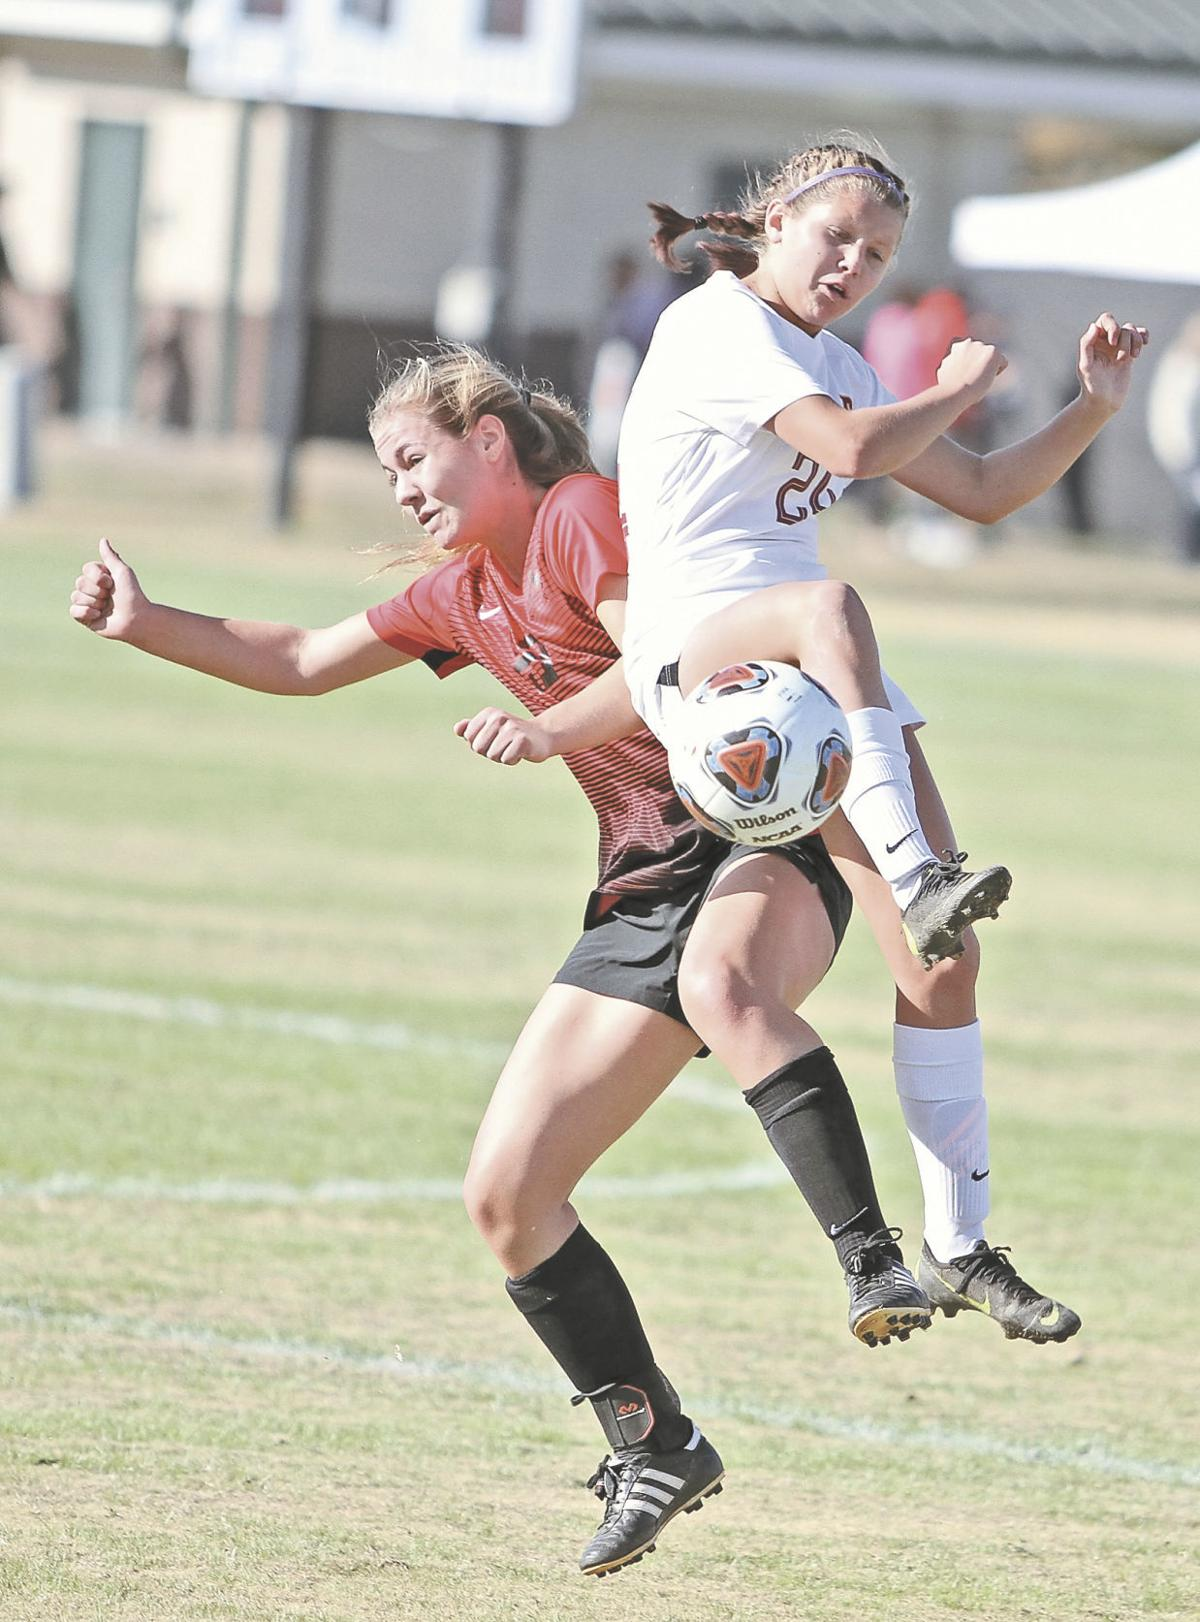 SOCCER: Maryville's Reyna Coston vs. Science Hill